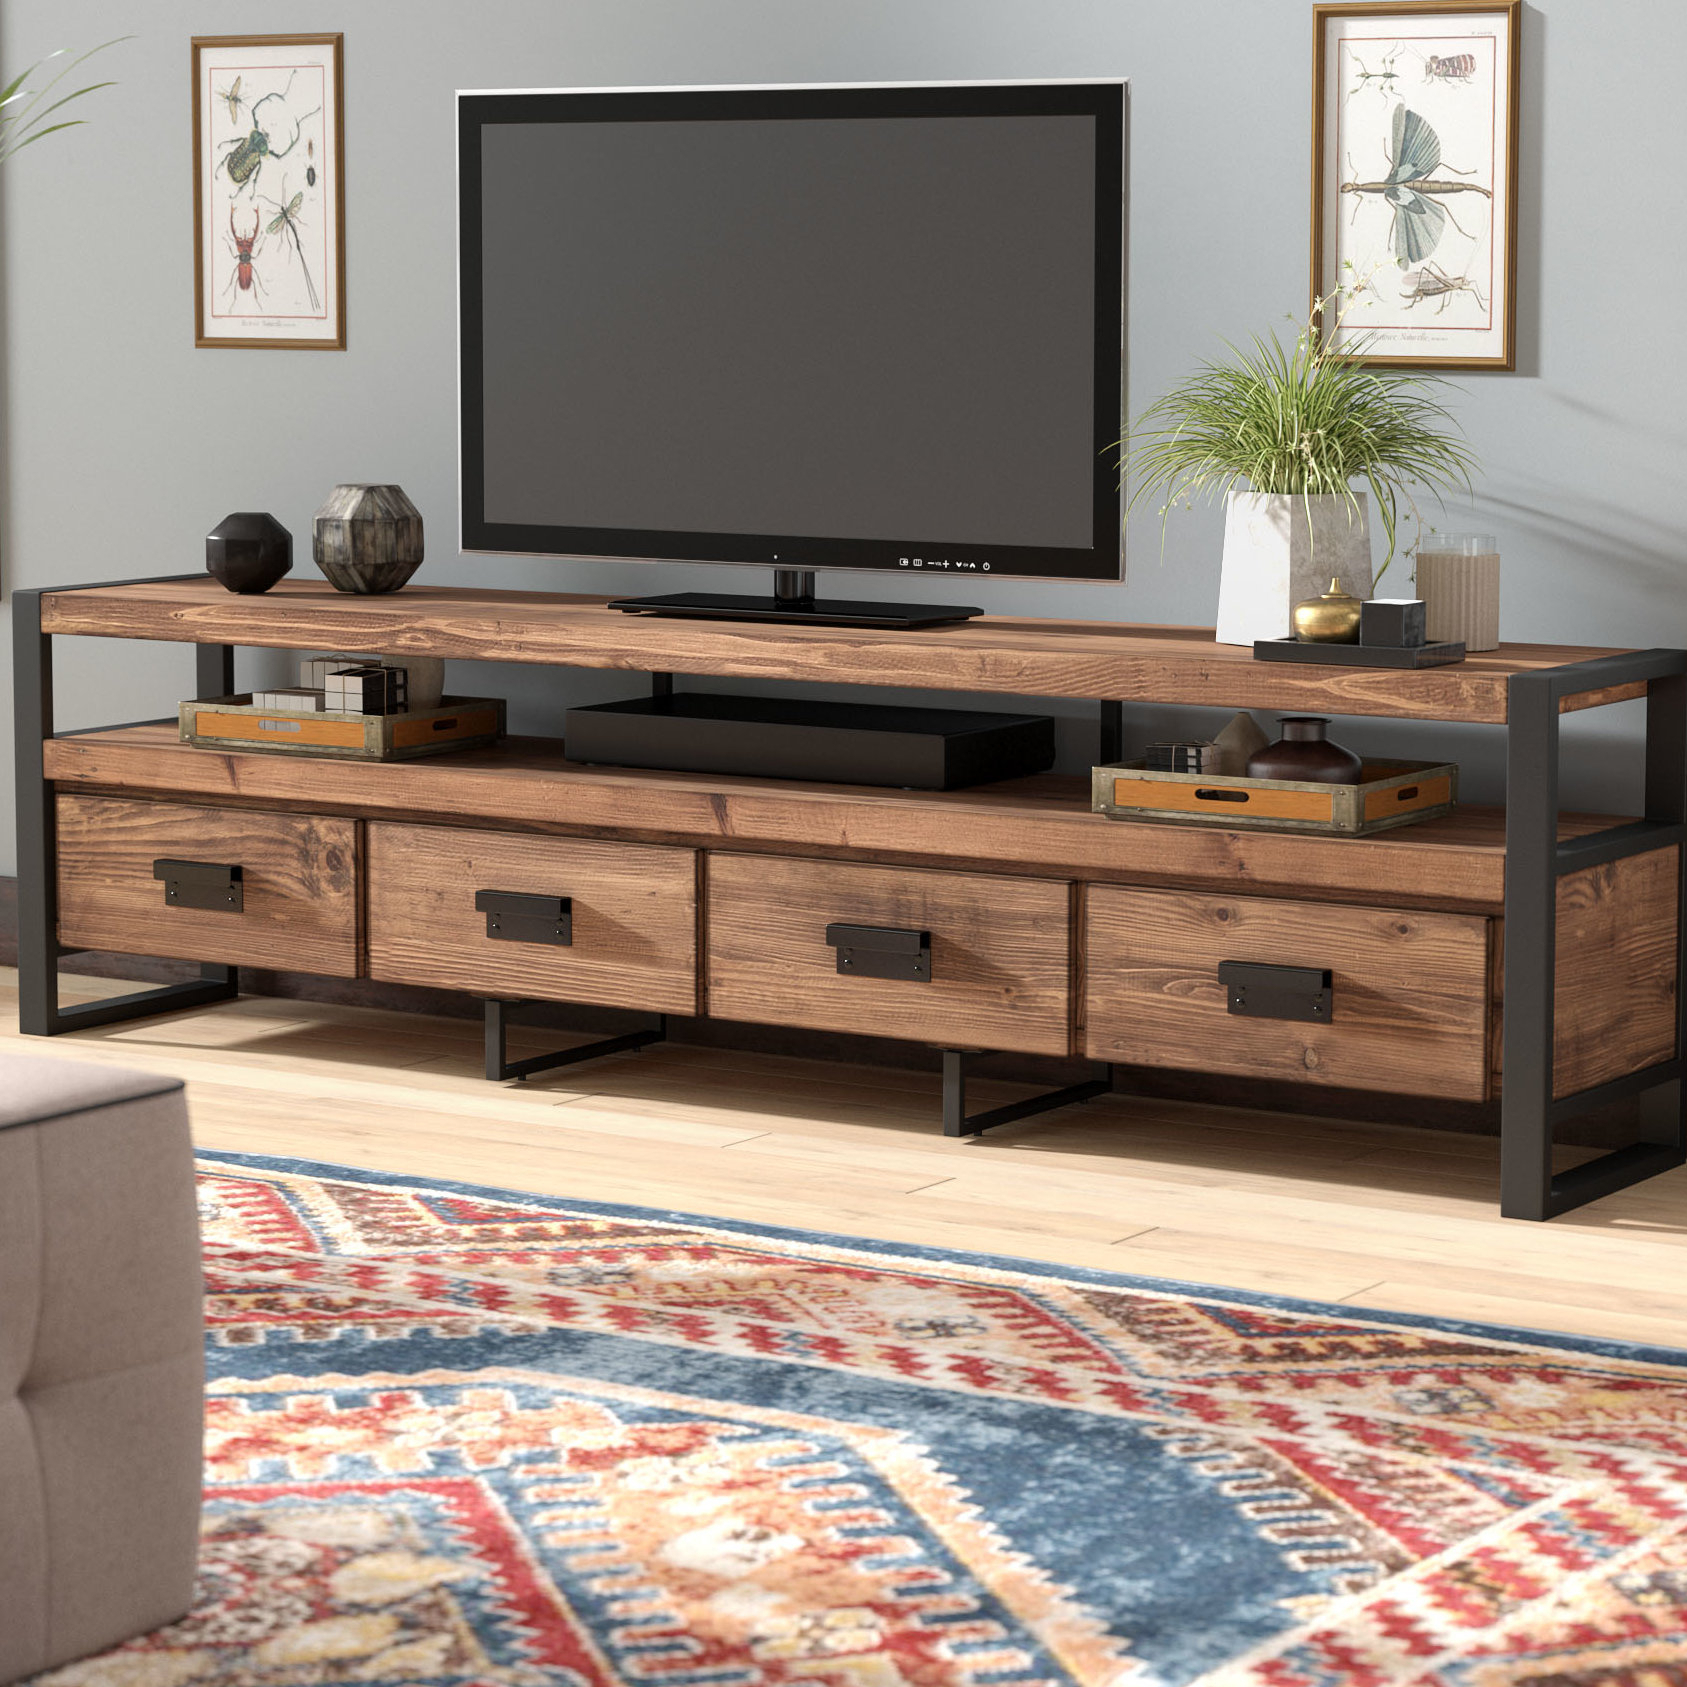 Industrial Tv Stands & Entertainment Centers You'll Love | Wayfair For Oxford 70 Inch Tv Stands (View 27 of 30)